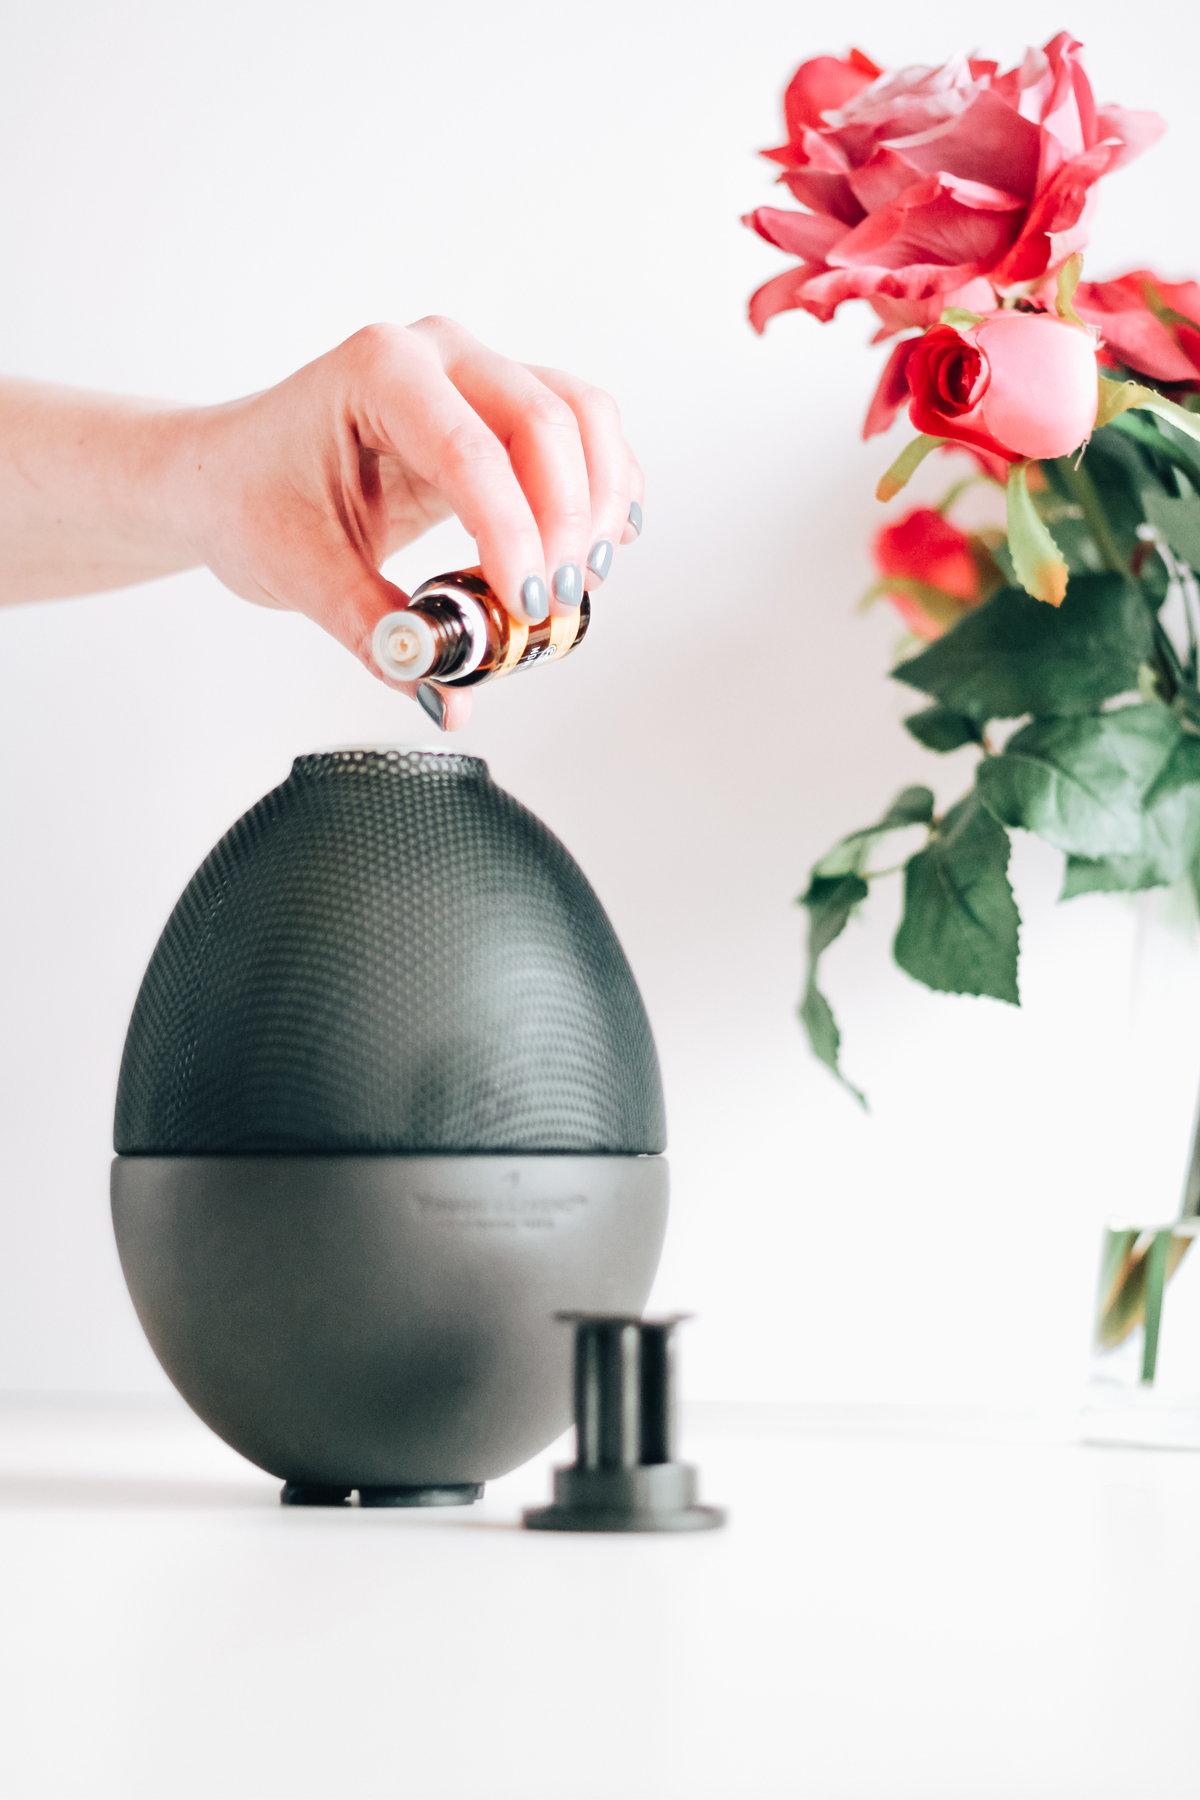 You get to choose which diffuser you like best!